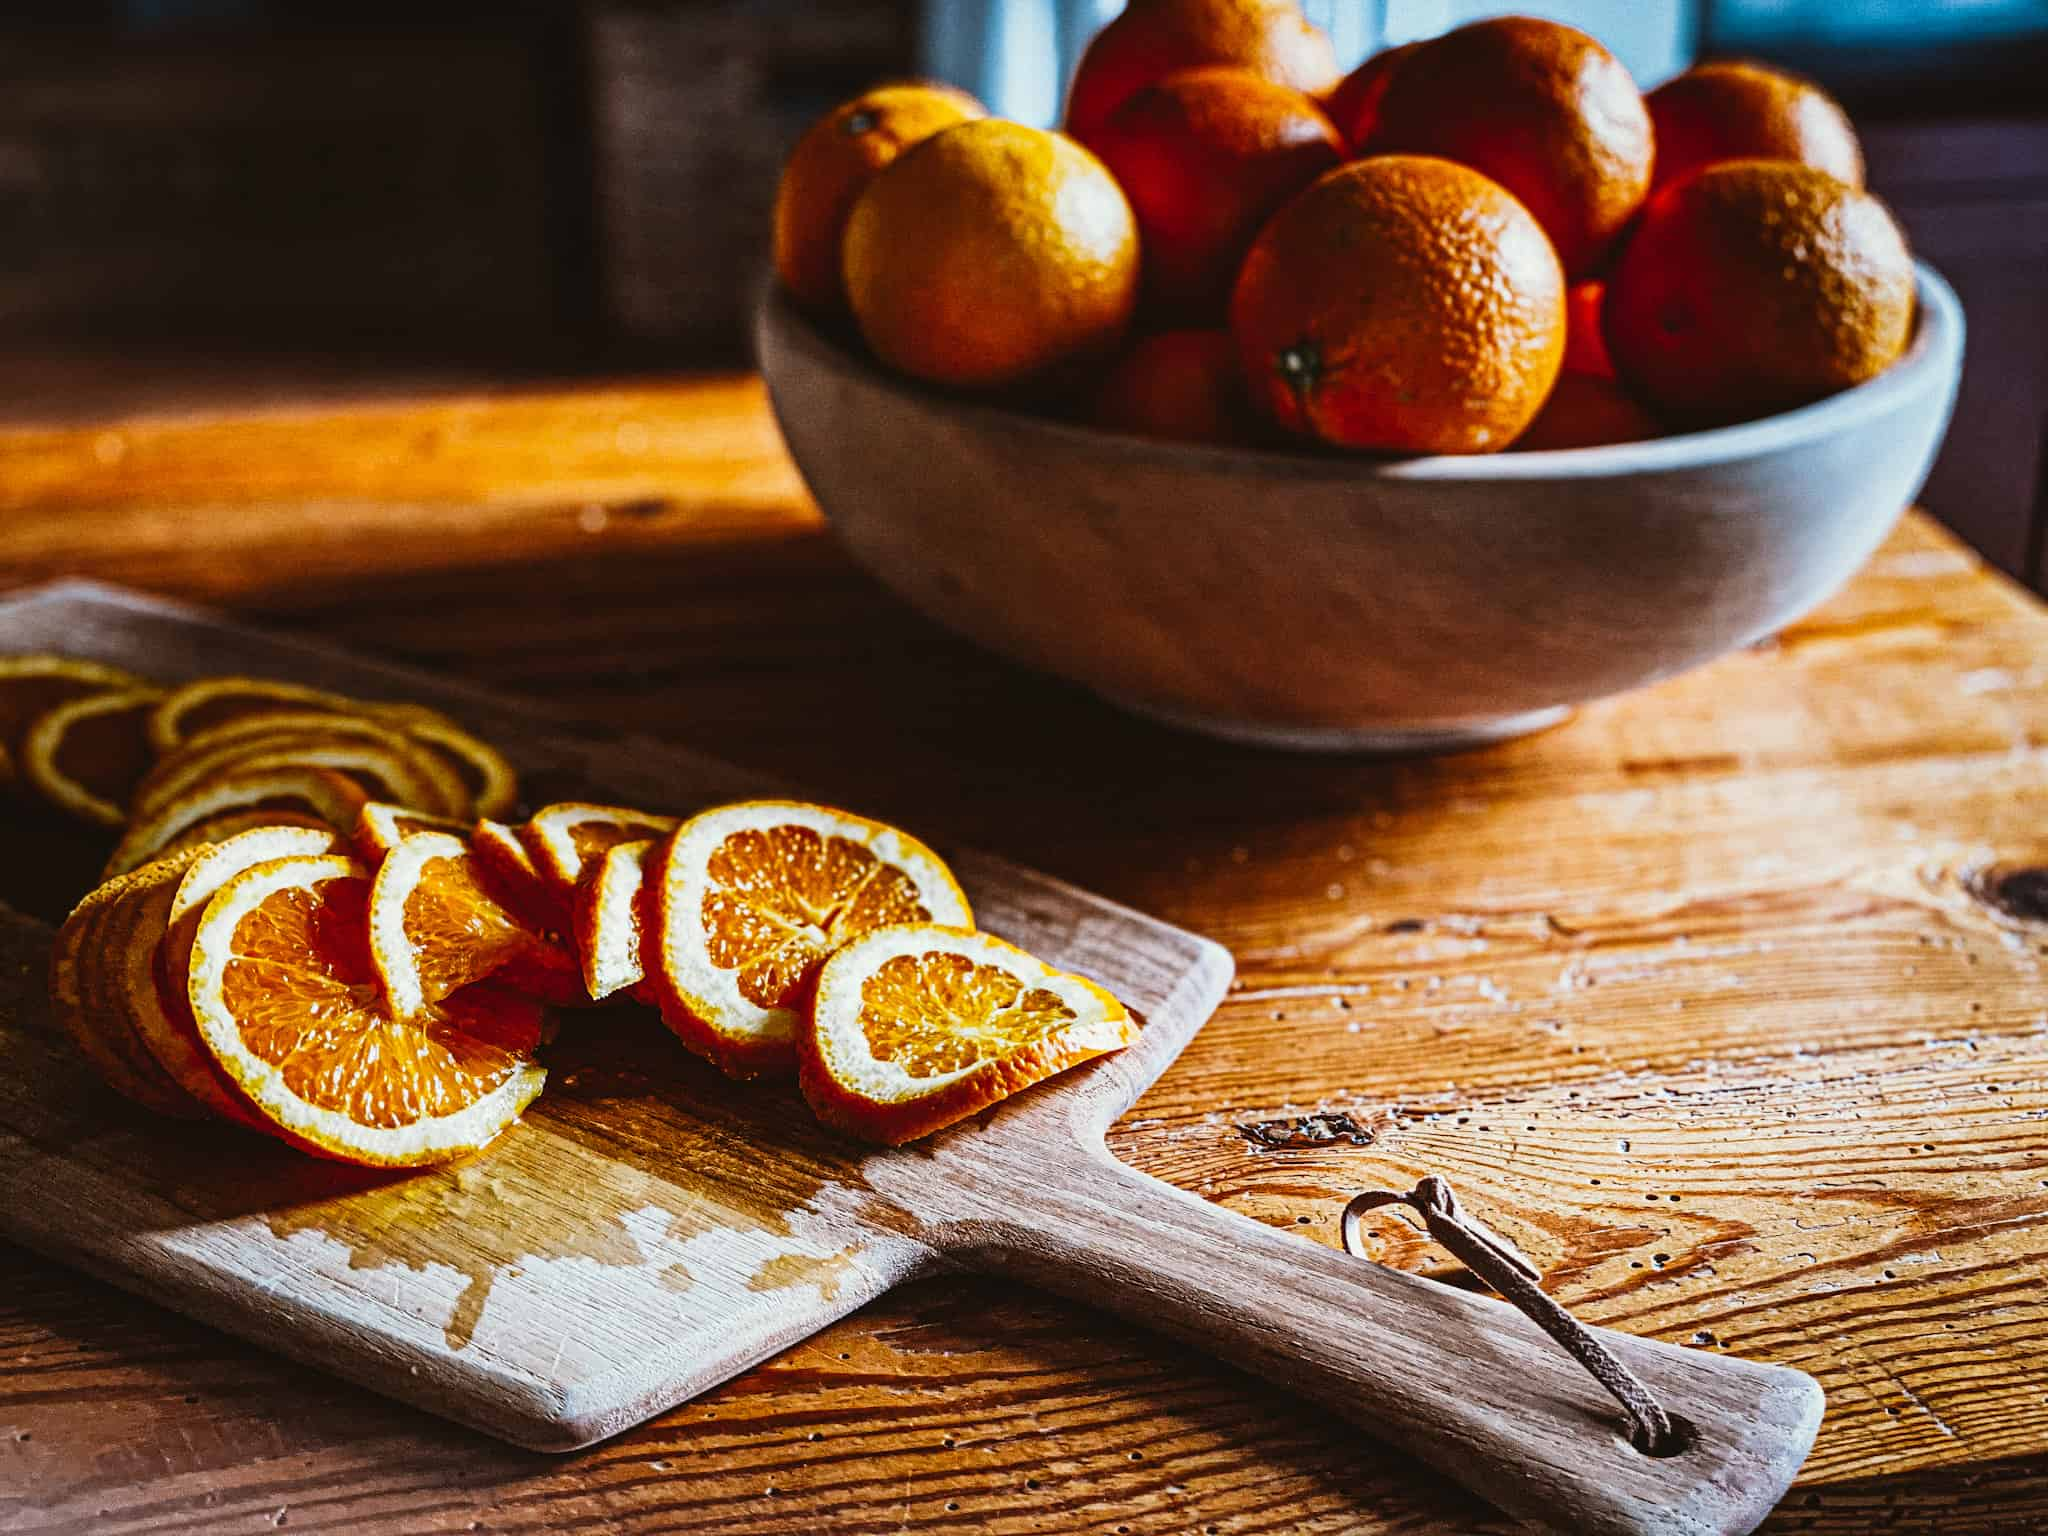 oranges in wooden bowl and sliced oranges on wooden cutting board